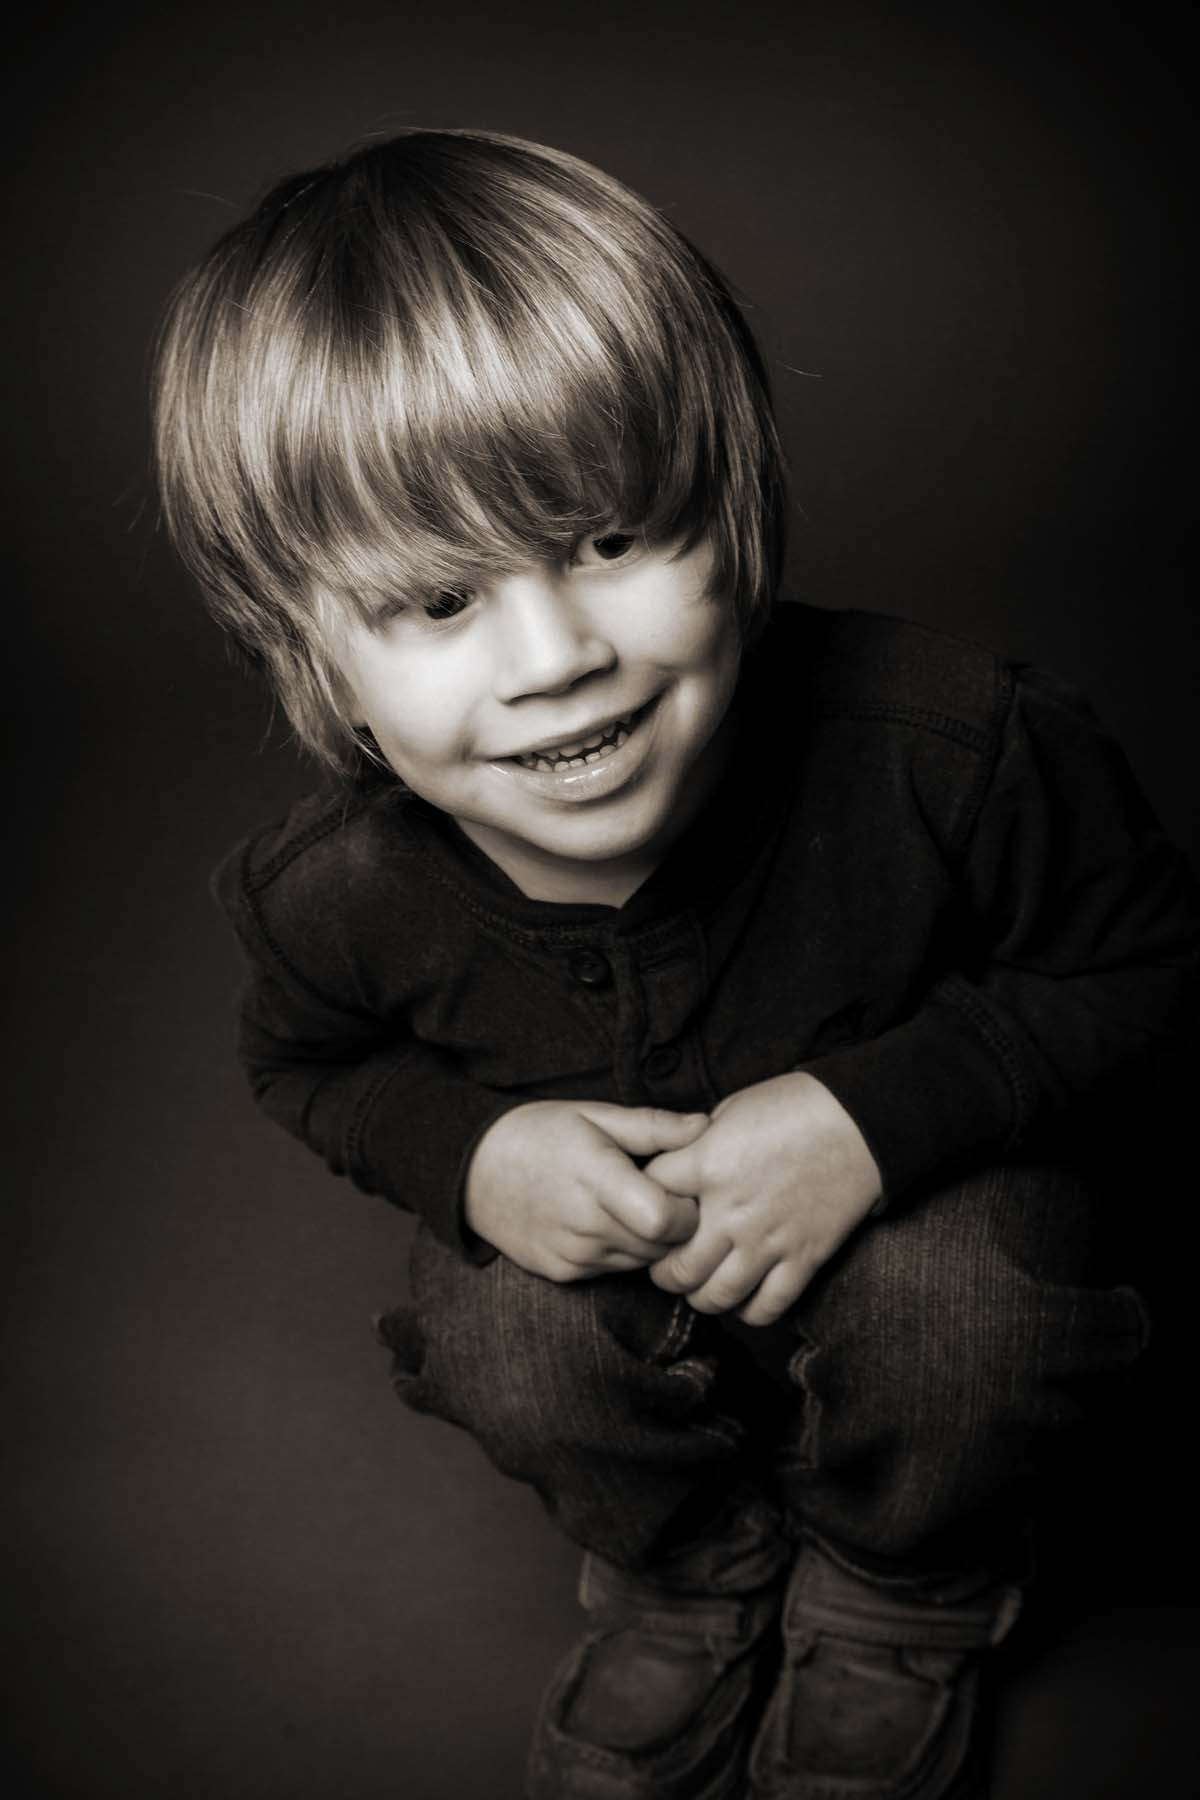 Youngster of the Year - Child Photographer (6)